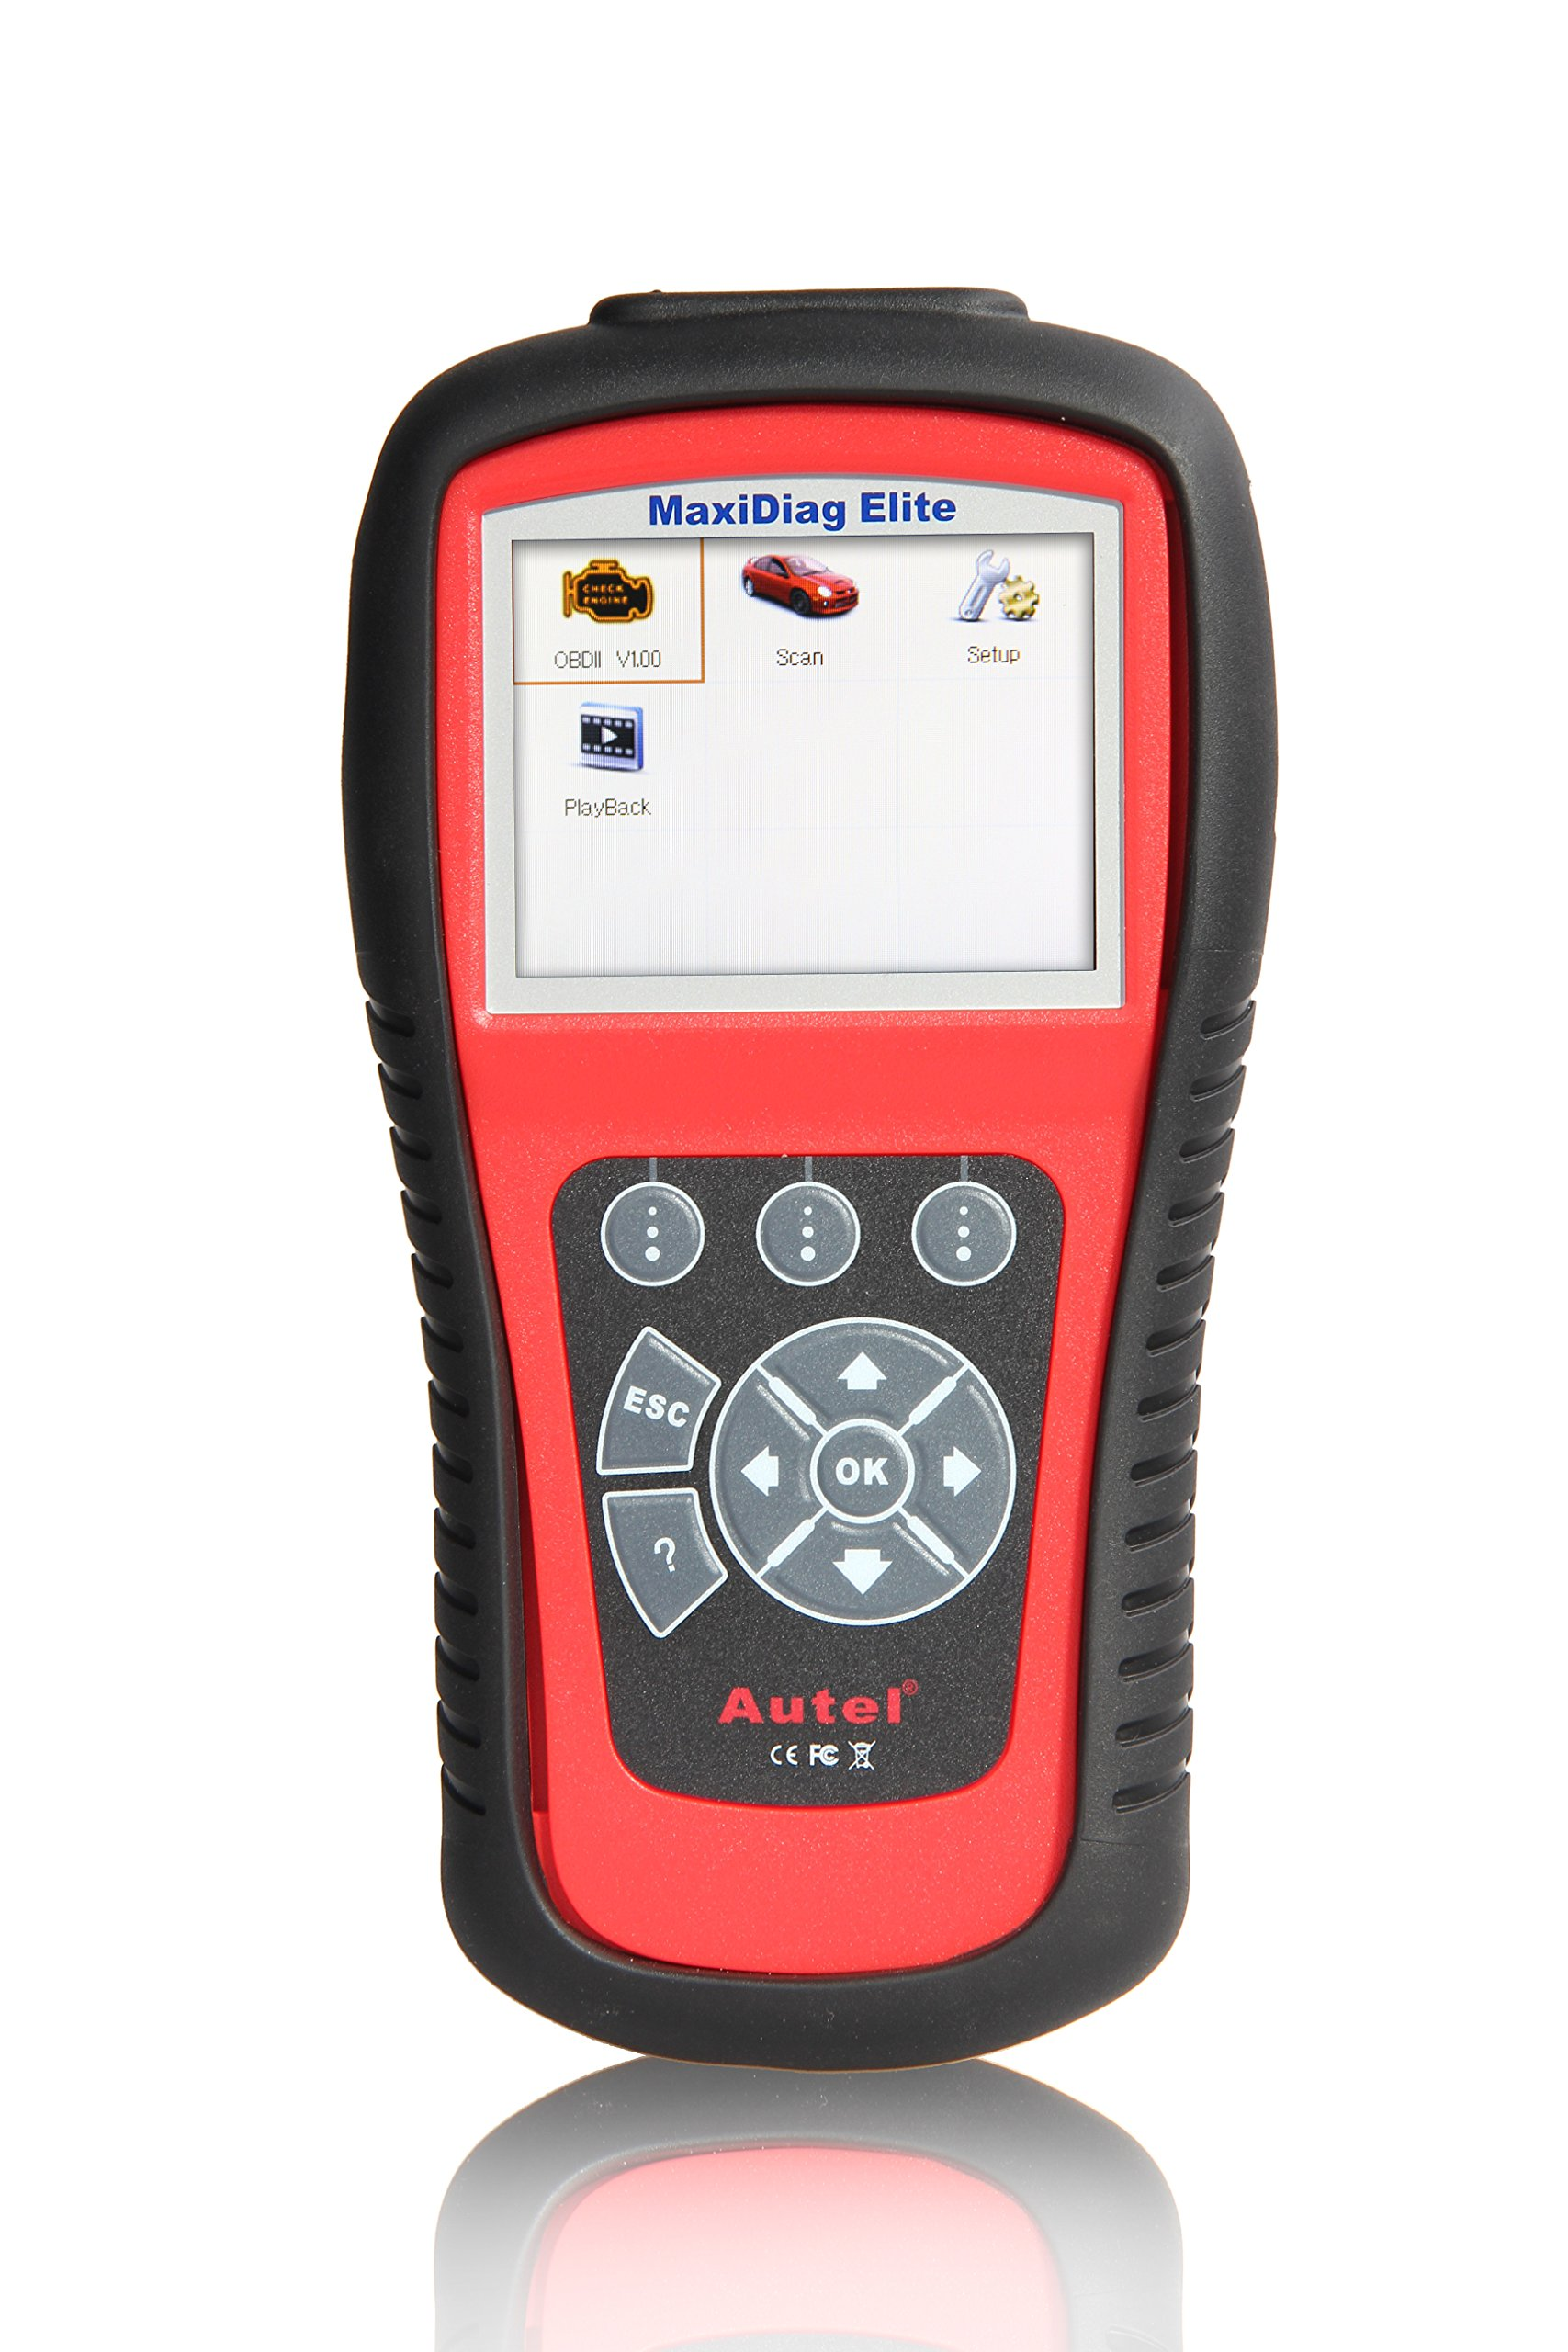 Autel MaxiDiag Elite MD802 OBD2 Scan Tool Car Diagnostic Scanner with All Systems Diagnoses OBD2 Full Functions and Reset Services including Oil Reset and EPB Reset for DIYers